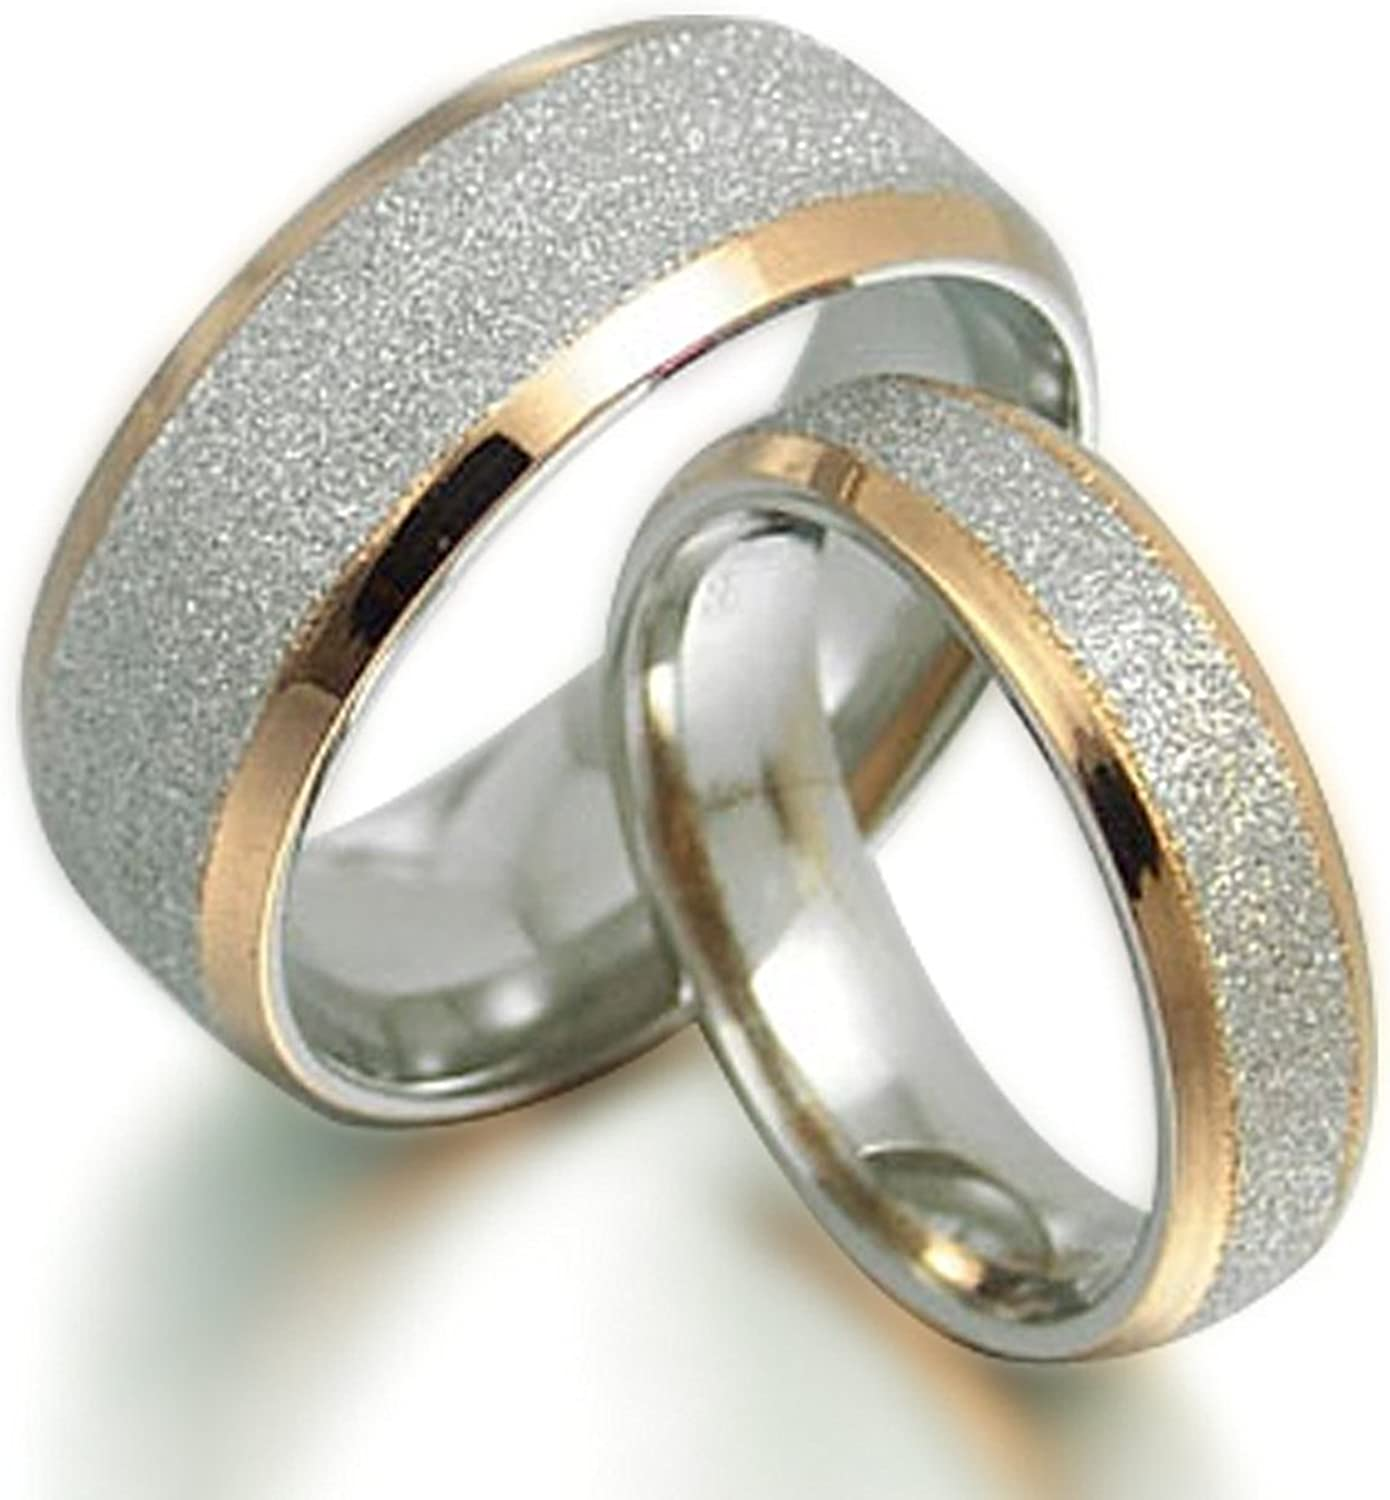 Gemini His and Her 18K Gold Wedding Year-end gift Rin Arlington Mall Filled Titanium Matching